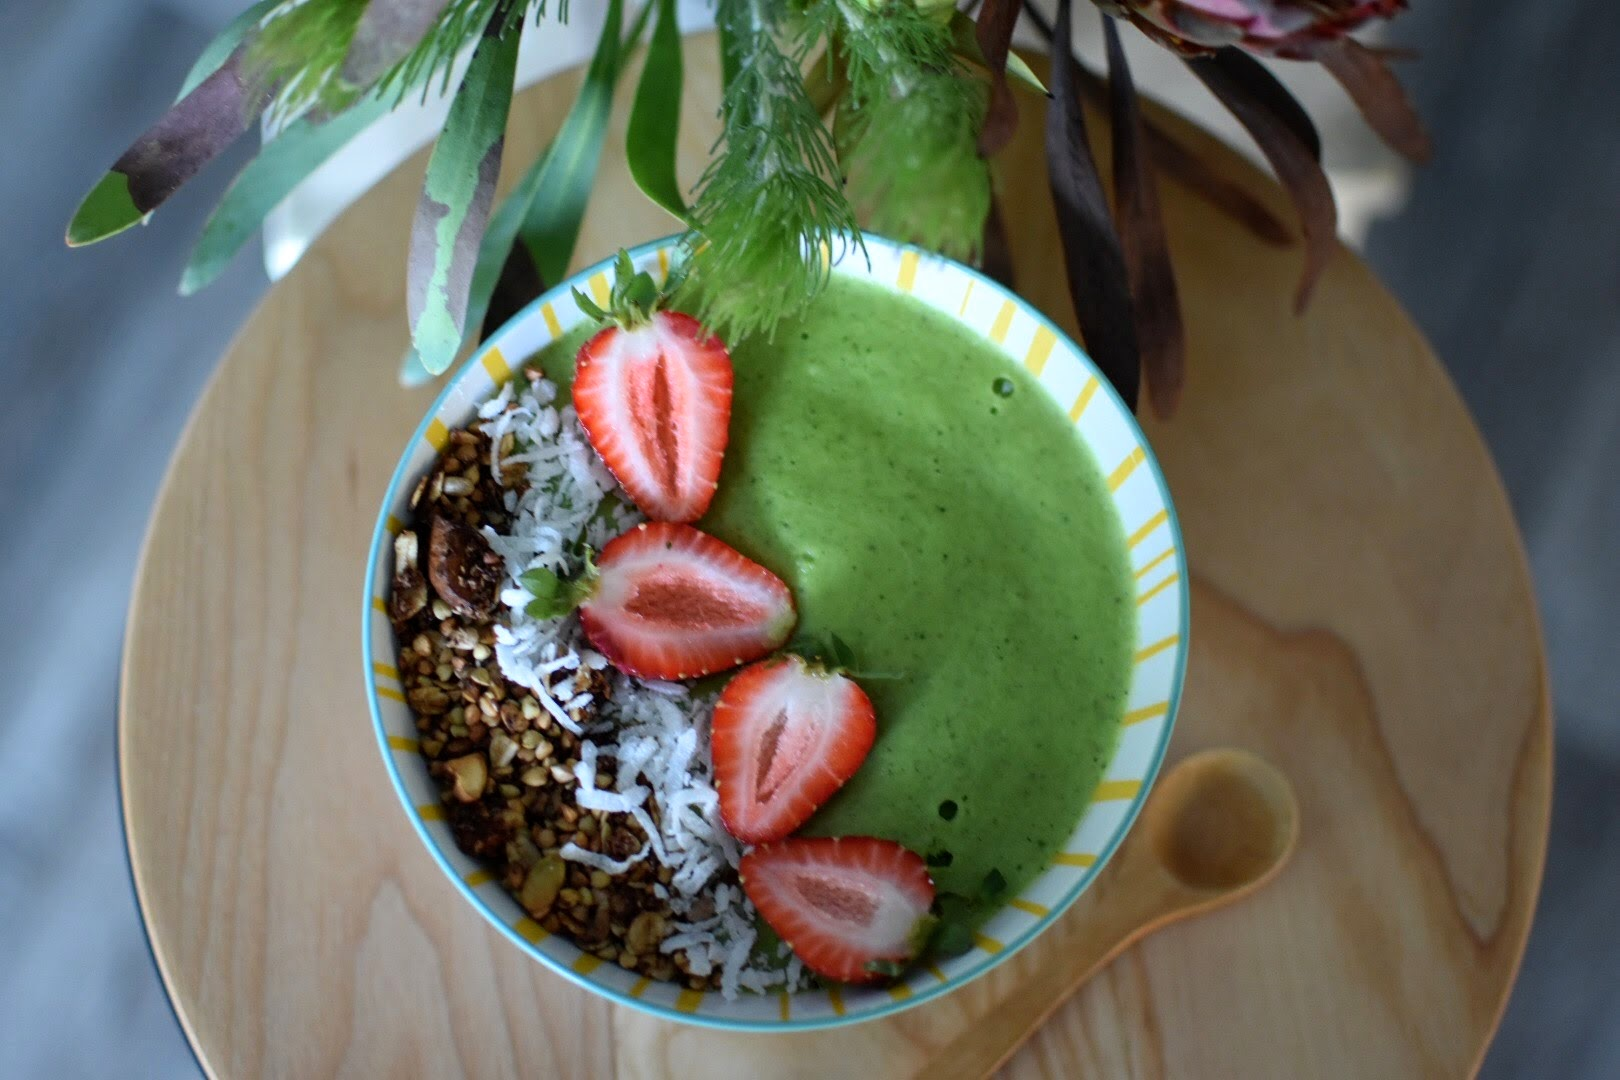 Make smoothies more interesting! - This week I made one of my favourite smoothiesinto a smoothie bowl to start my days off with greens. I substituted the protein with salted caramel protein and topped with homemade granola which was delightful!